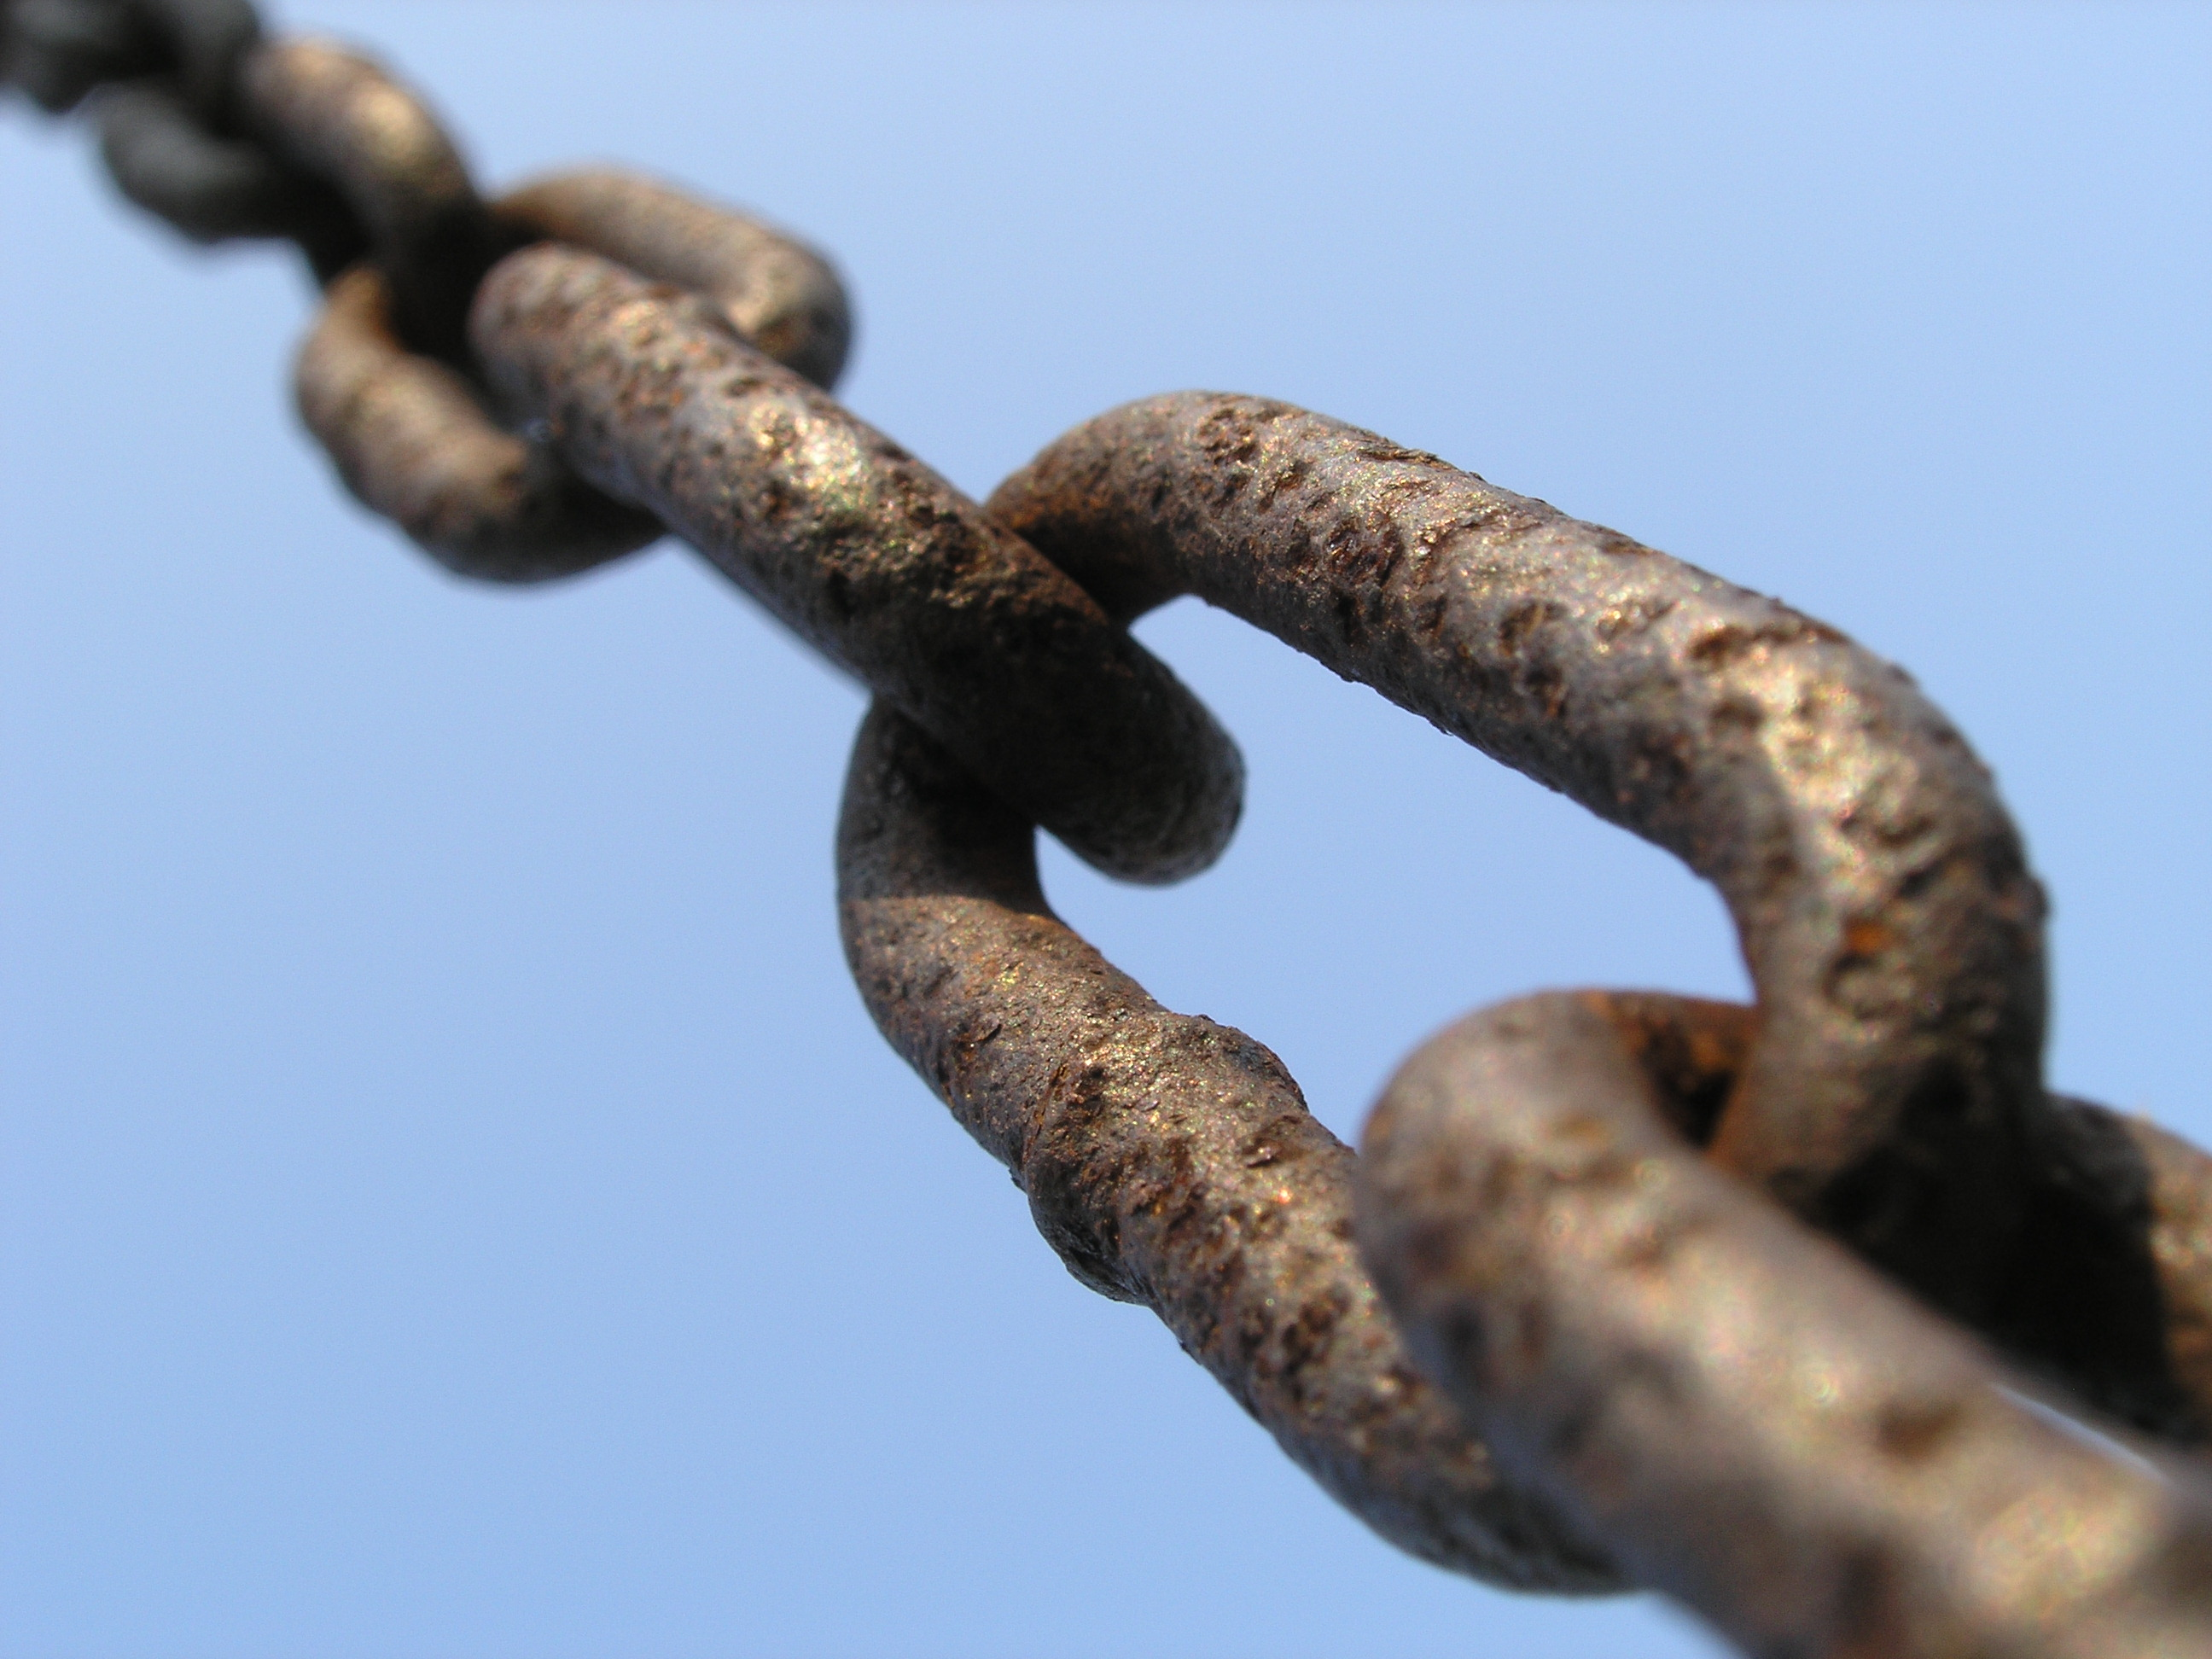 A chain, working well